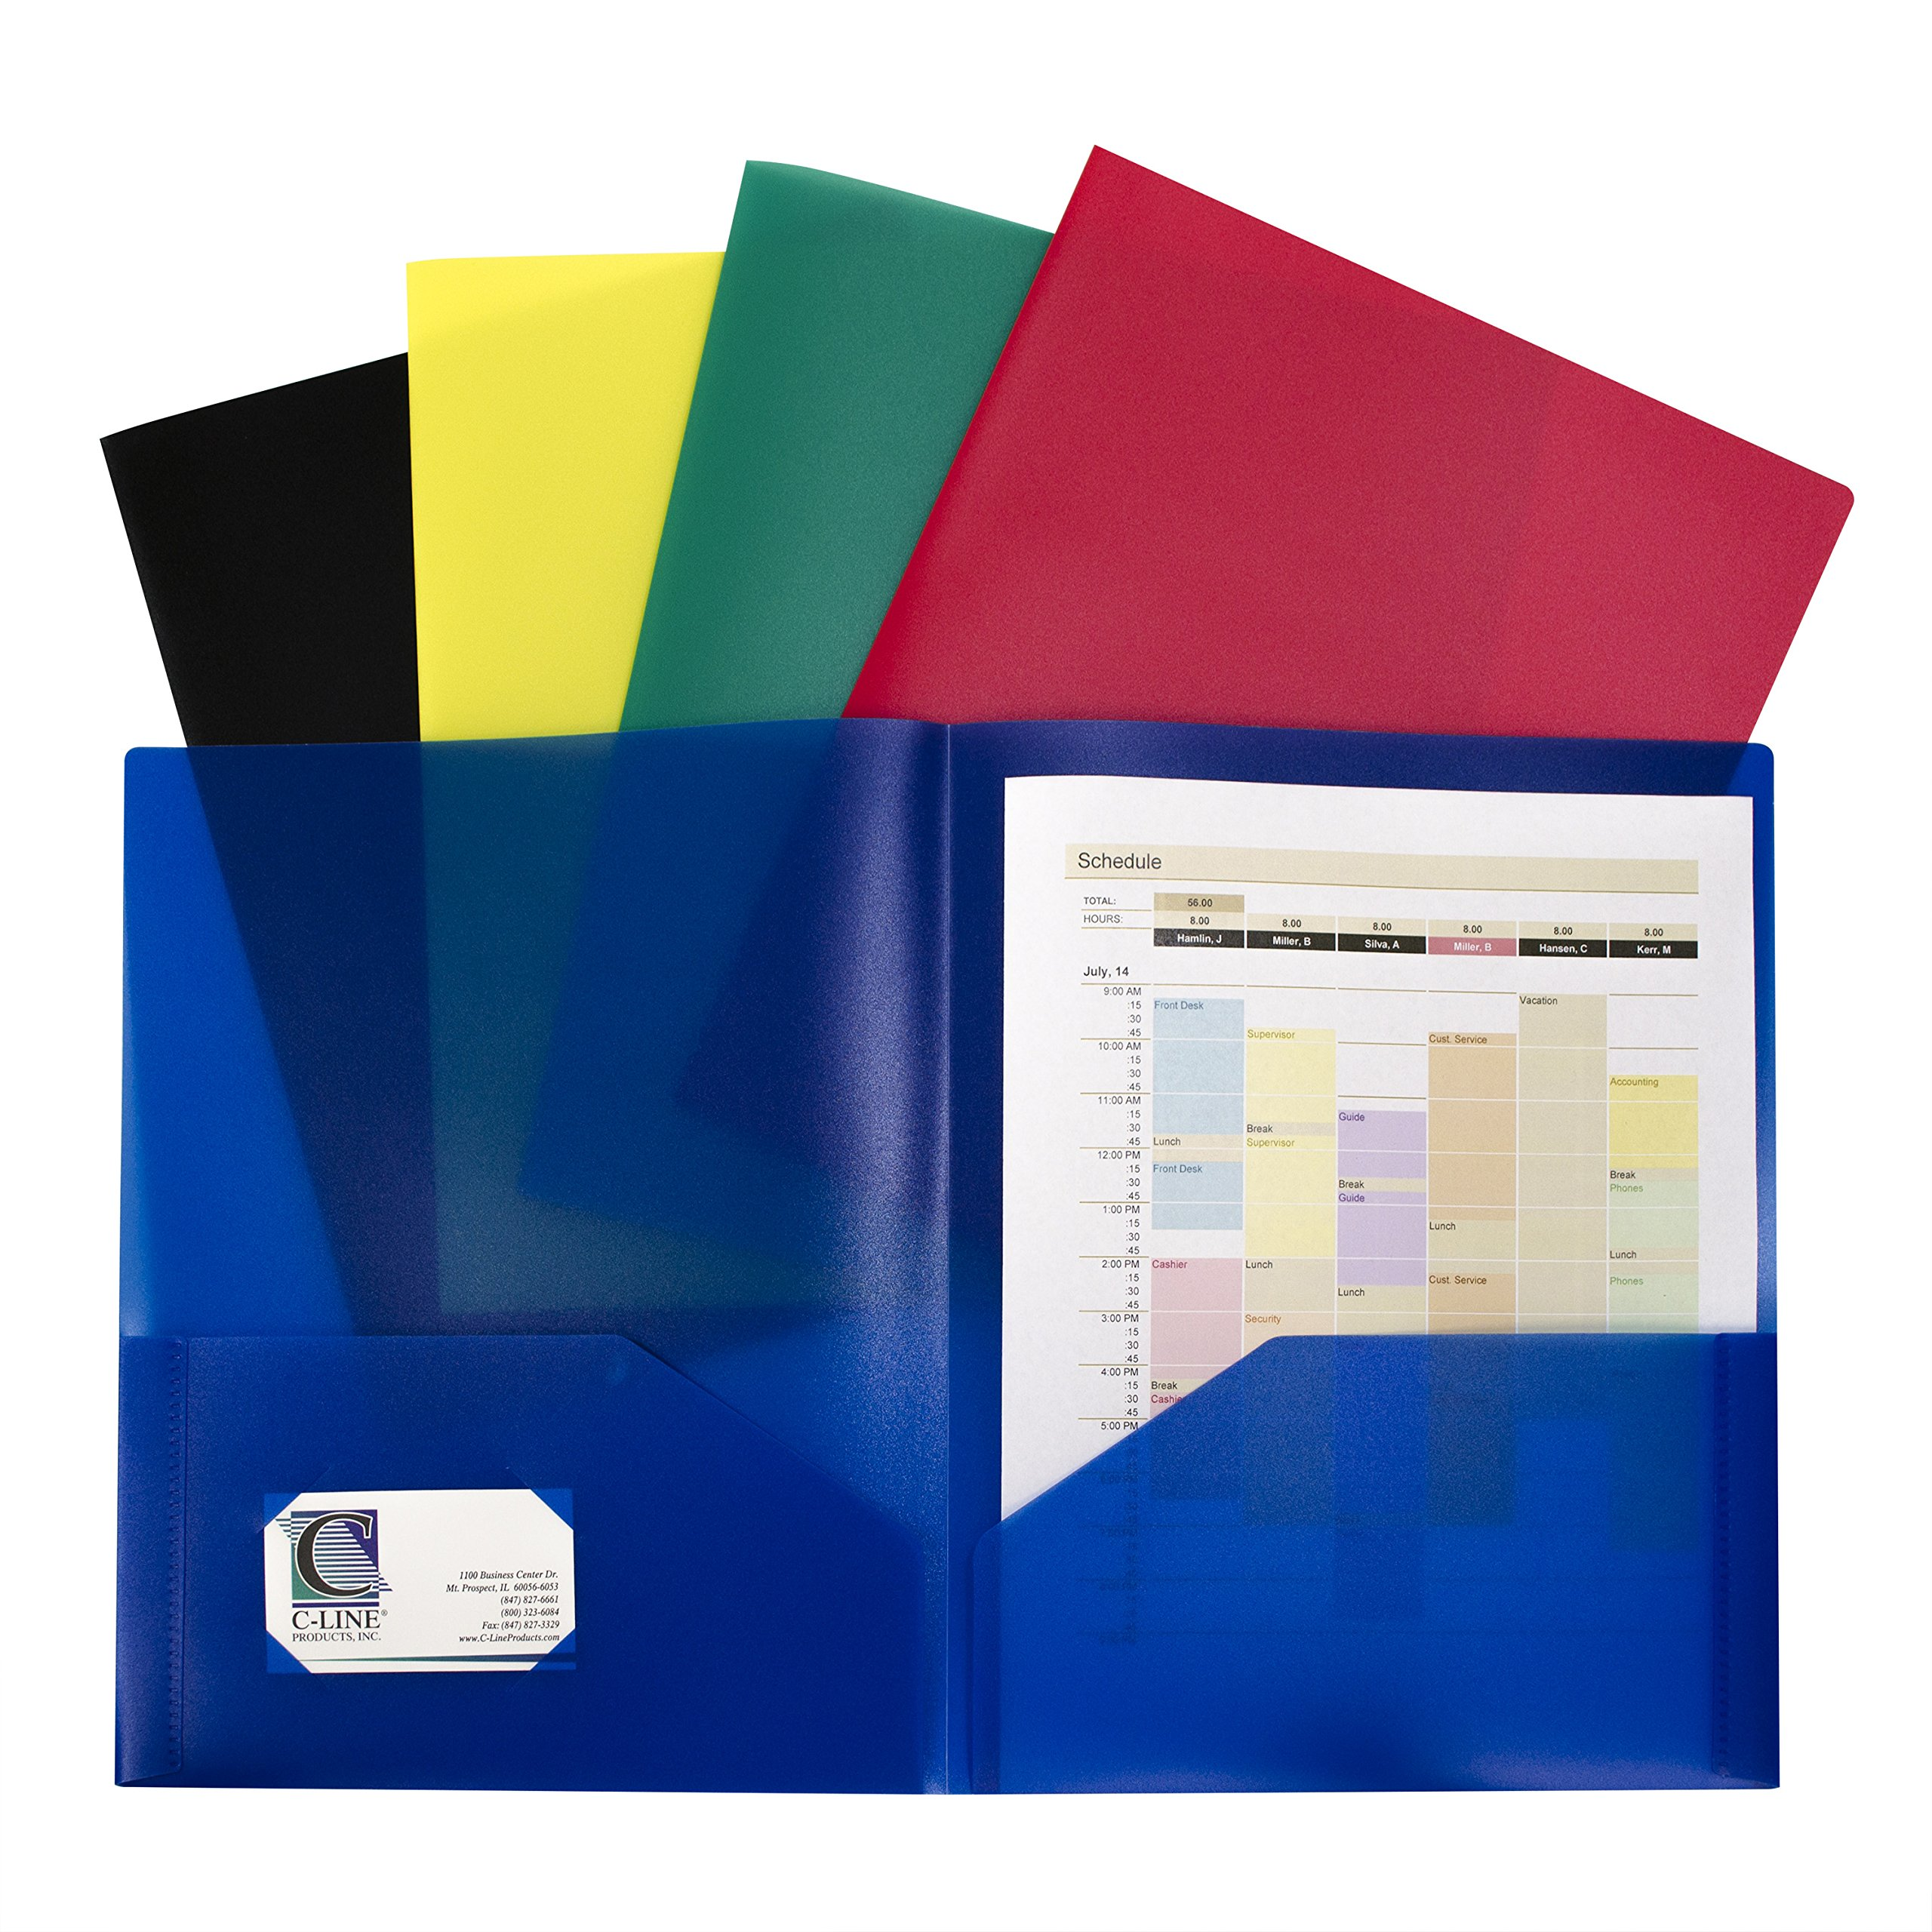 C-Line Two-Pocket Heavyweight Poly Portfolio, For Letter Size Papers, Includes Business Card Slot, Assorted Colors, 10 pack (32950)